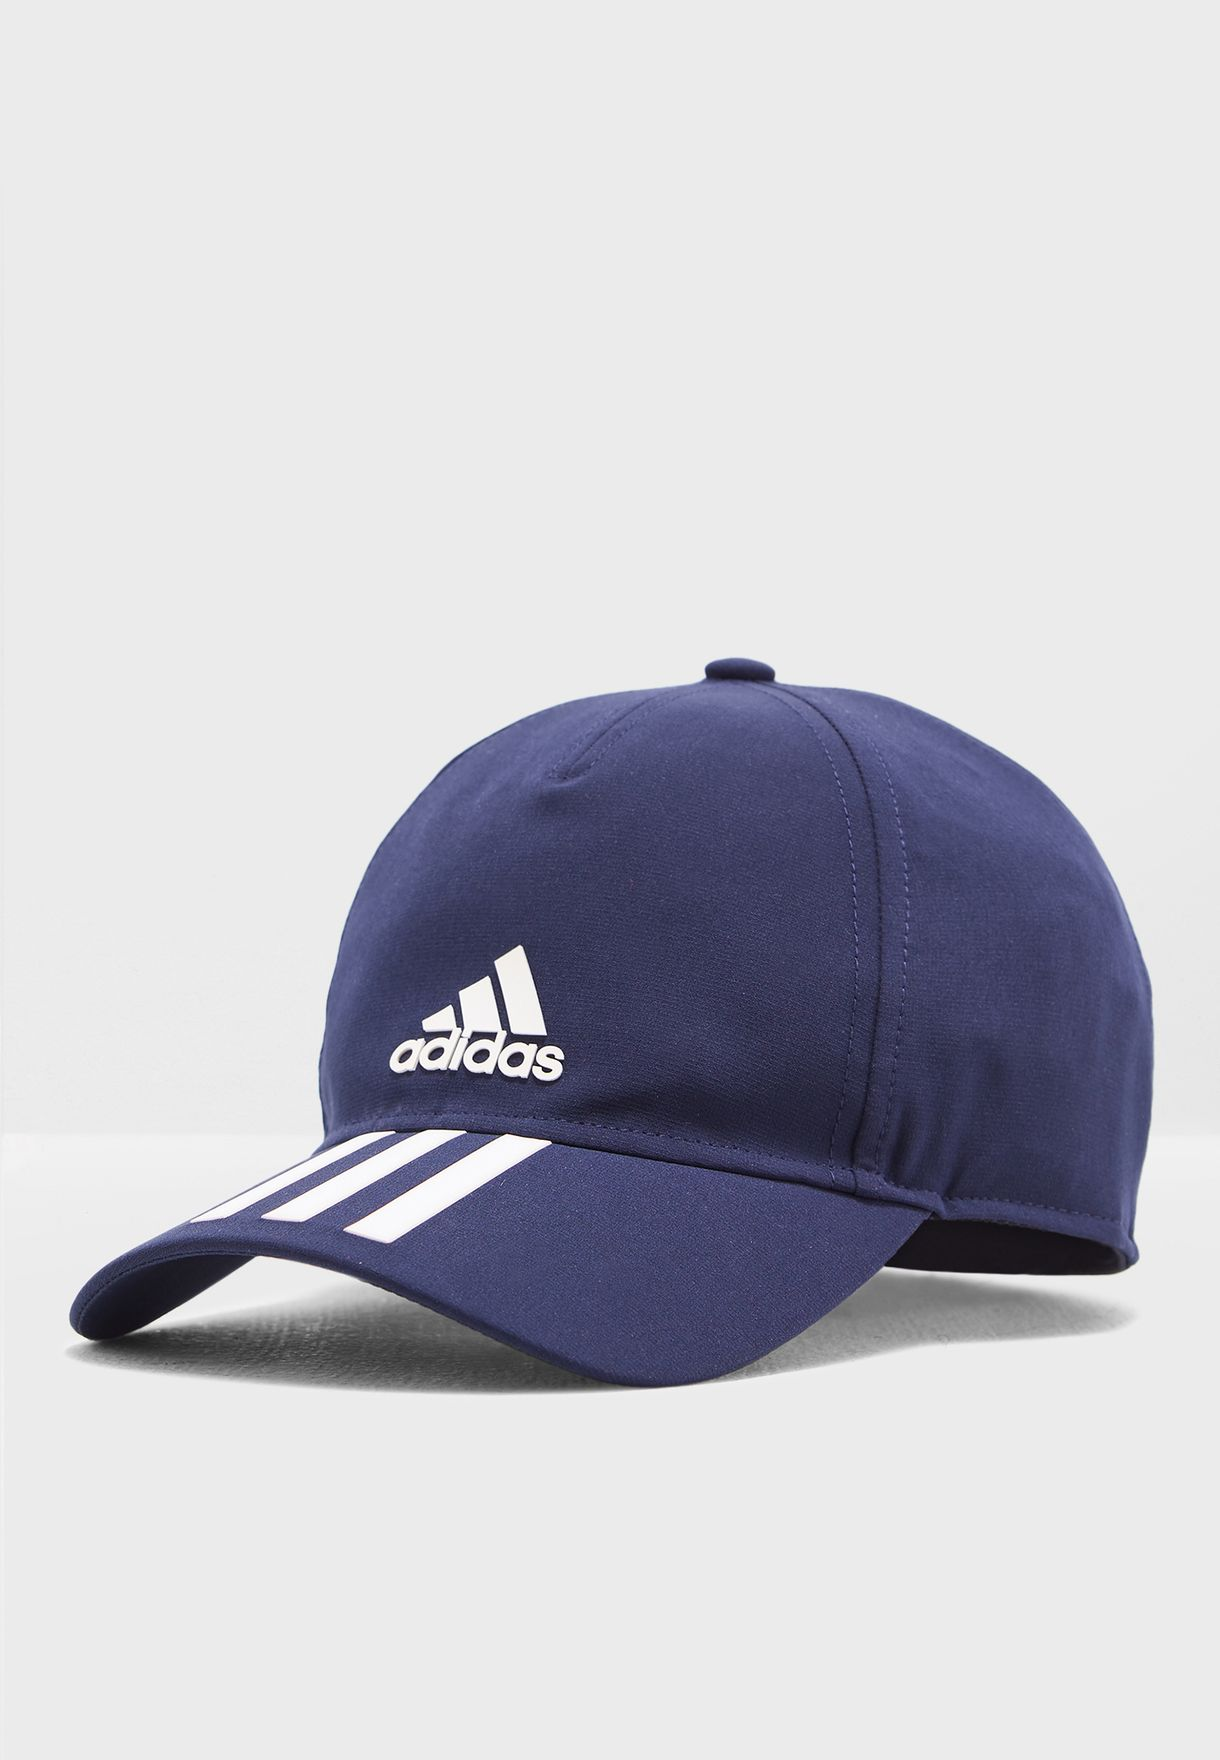 37ca4fea4ad Shop adidas navy C40 6 Panel 3 Stripe Climalite Cap DT8543 for Men in Saudi  - 14448AC65FNP